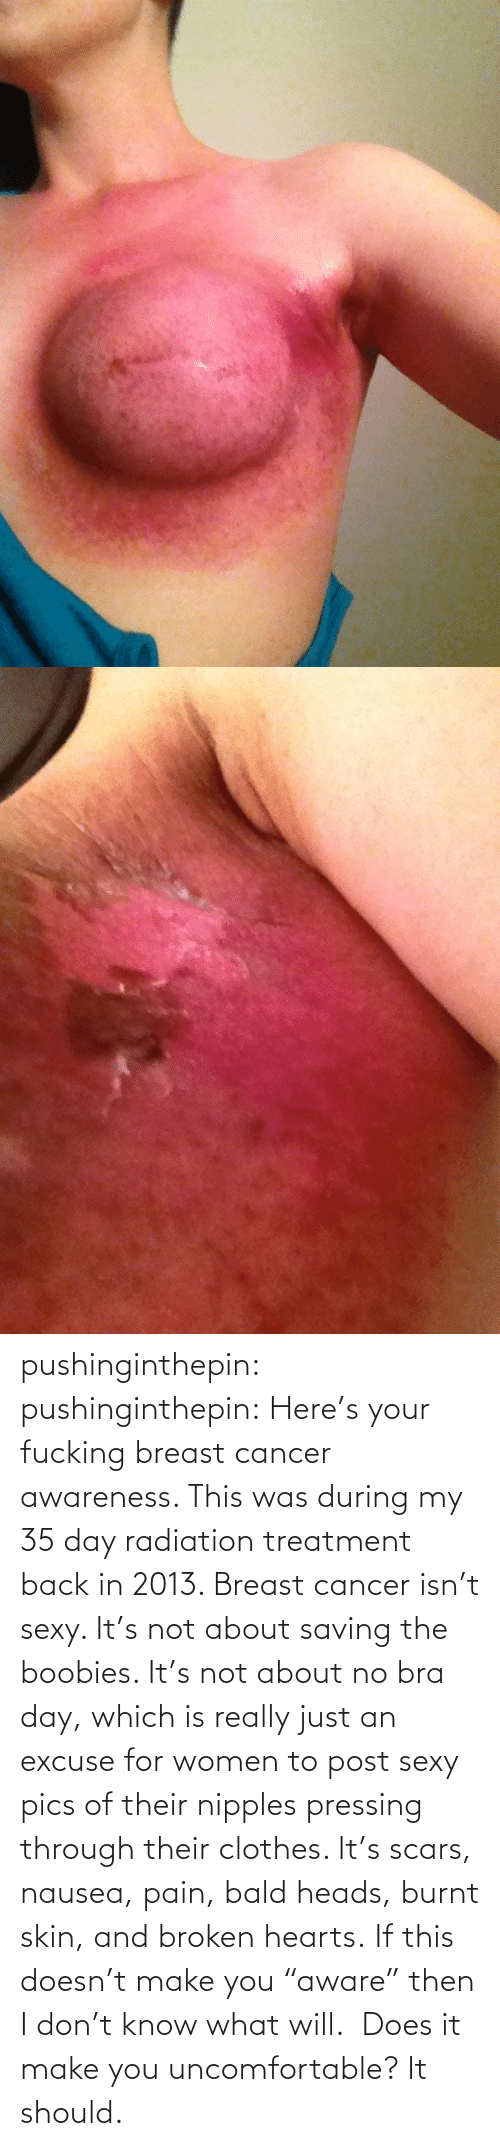 """Sexy Pics Of: pushinginthepin:  pushinginthepin:  Here's your fucking breast cancer awareness.   This was during my 35 day radiation treatment back in 2013. Breast cancer isn't sexy. It's not about saving the boobies. It's not about no bra day, which is really just an excuse for women to post sexy pics of their nipples pressing through their clothes. It's scars, nausea, pain, bald heads, burnt skin, and broken hearts. If this doesn't make you""""aware"""" then I don't know what will. Does it make you uncomfortable? It should."""